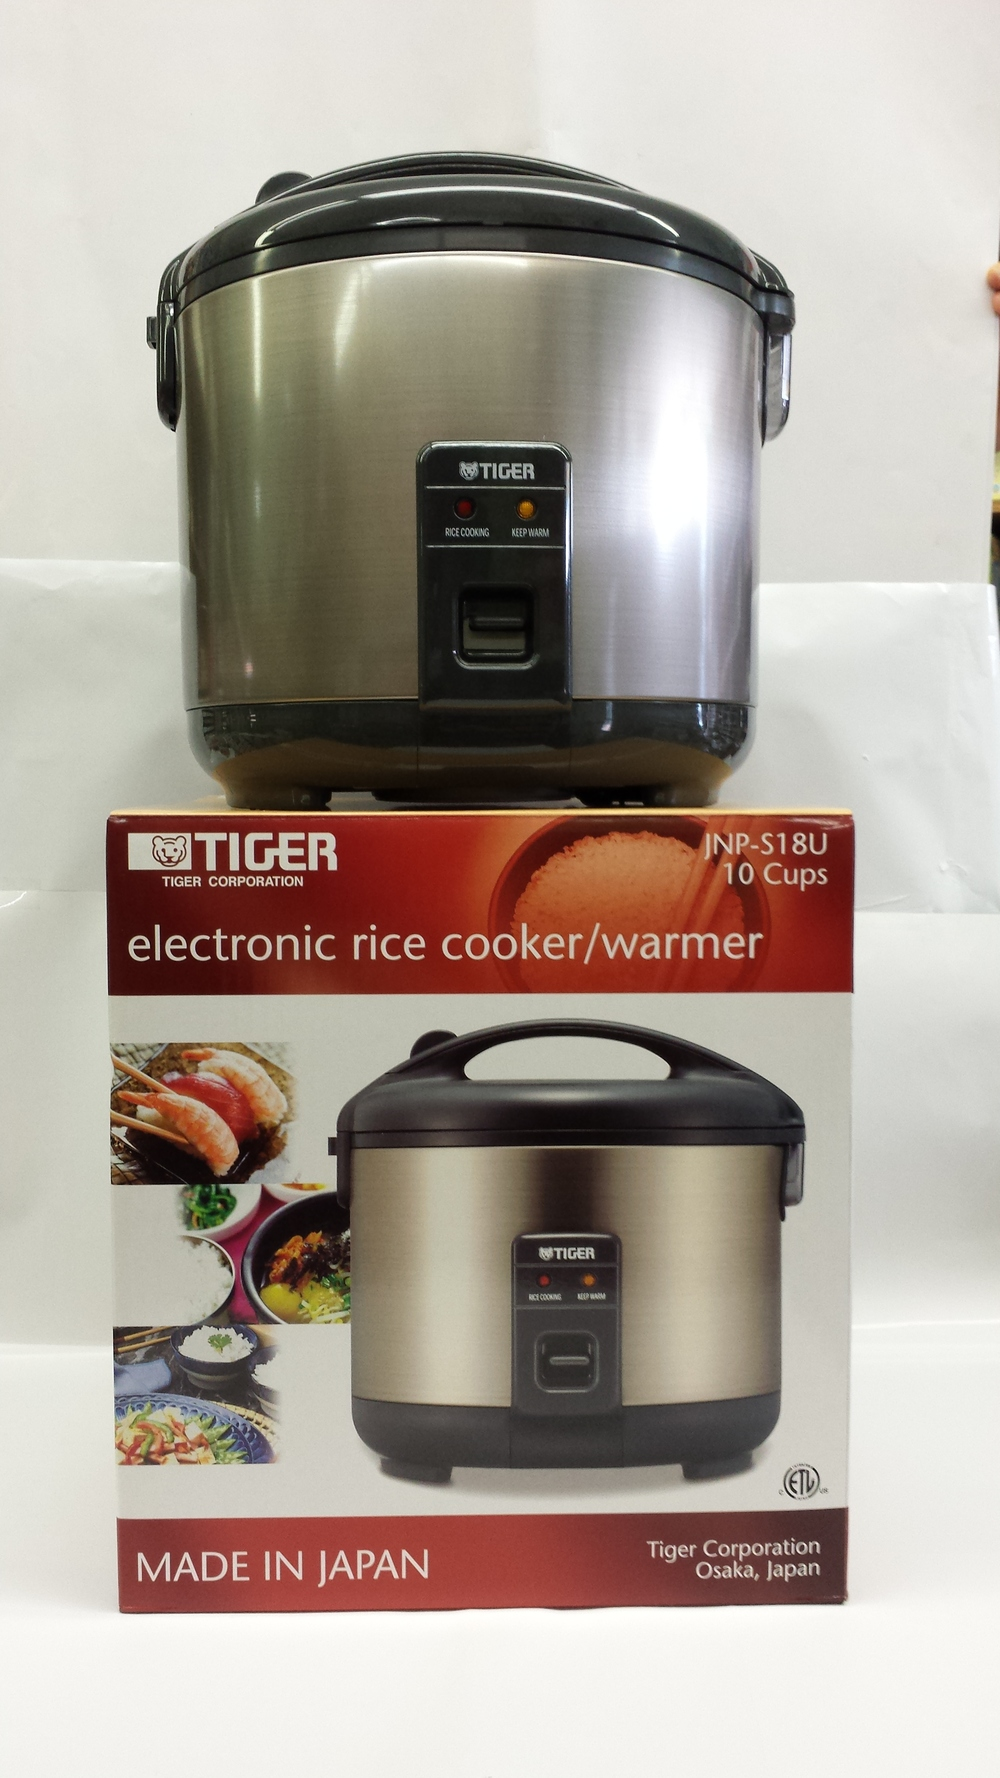 Rice Cooker   Tiger   RC28110 4x10 cups  RC28104 4x3 cups  RC28105 4x5.5 cups